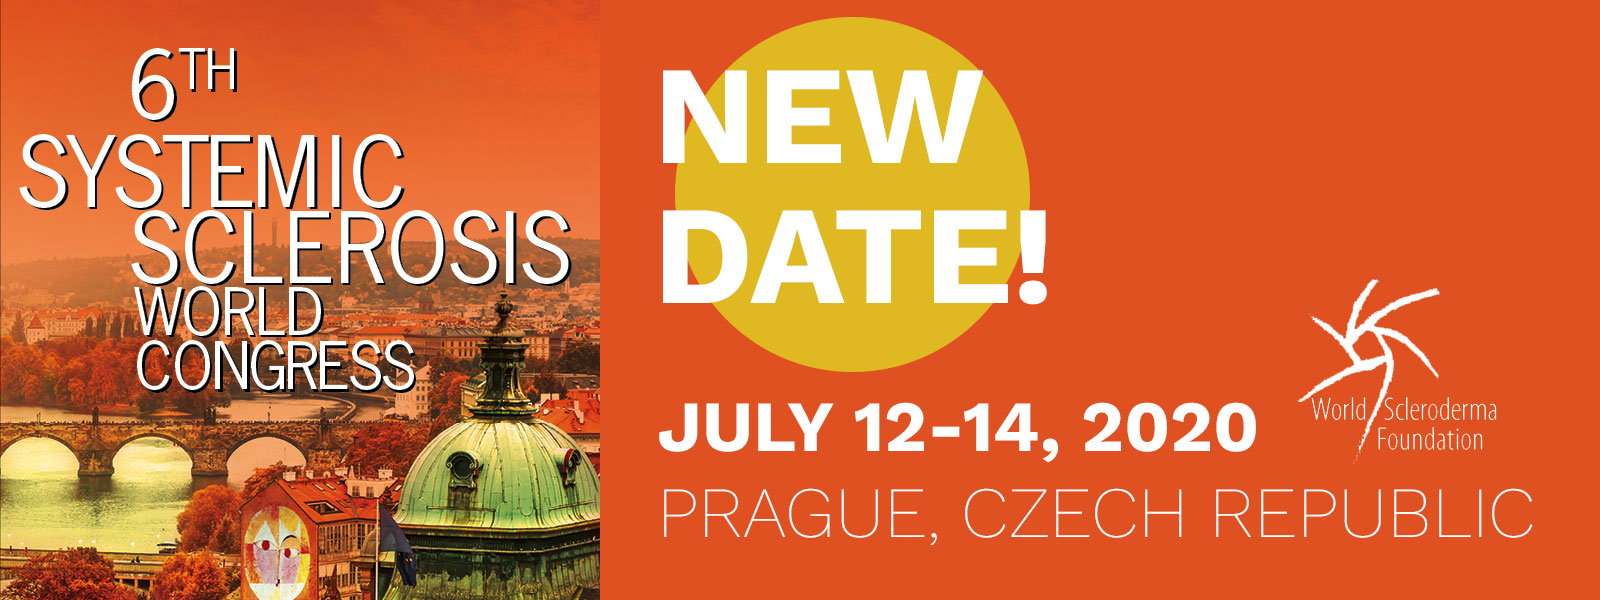 World Congress 2020 NEW DATE - 12-14 July